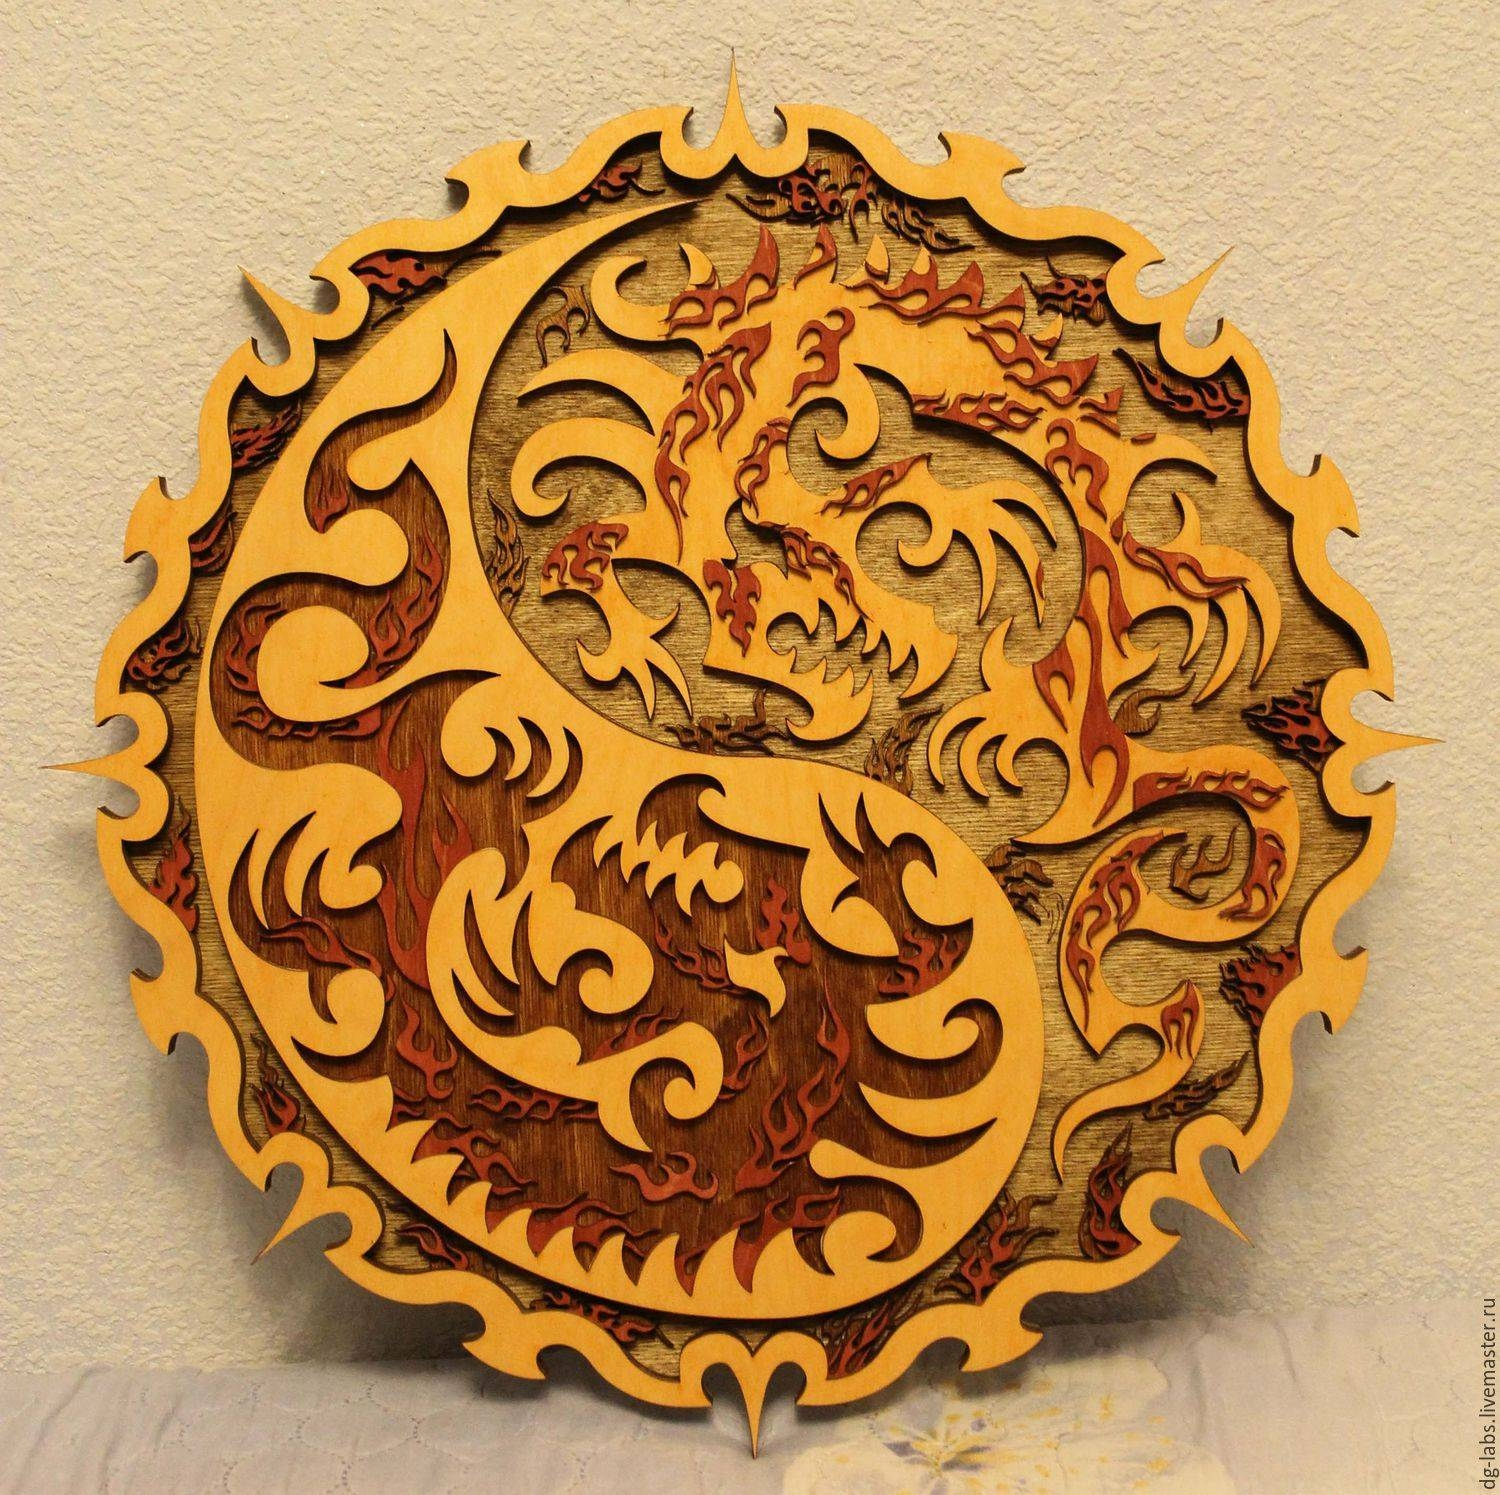 Buy Panels Of Dragons Yin Yang On Livemaster Online Shop Throughout Most Popular Yin Yang Wall Art (View 6 of 30)